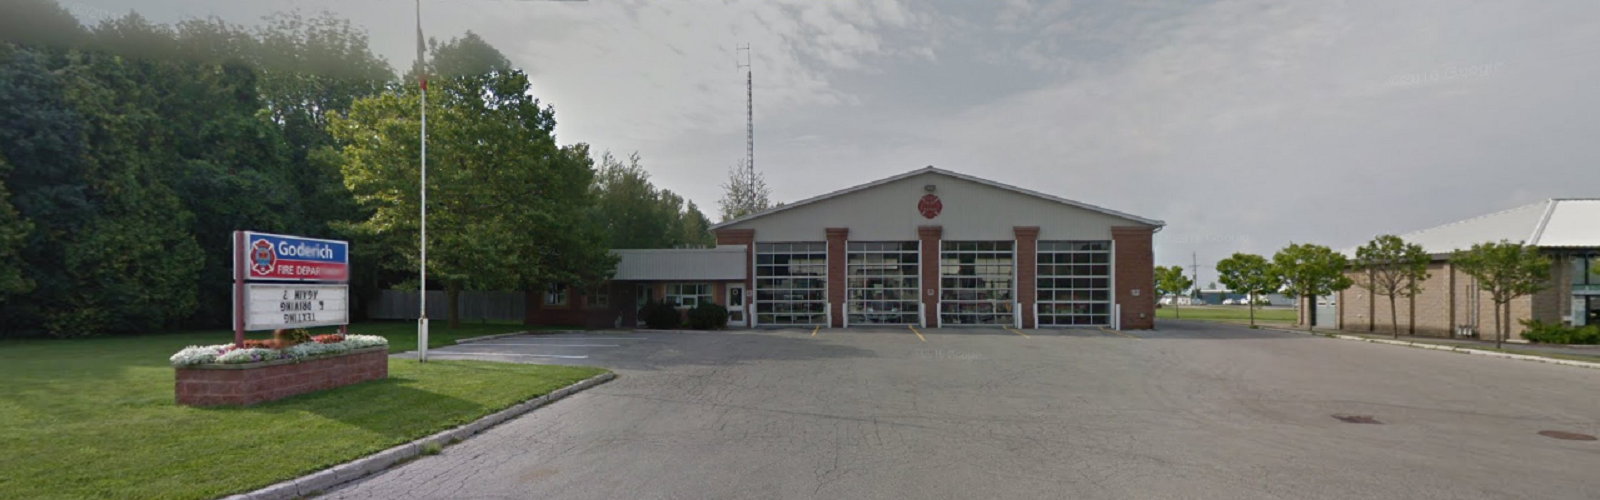 Goderich Fire Hall, 248 Sunocast Drive East